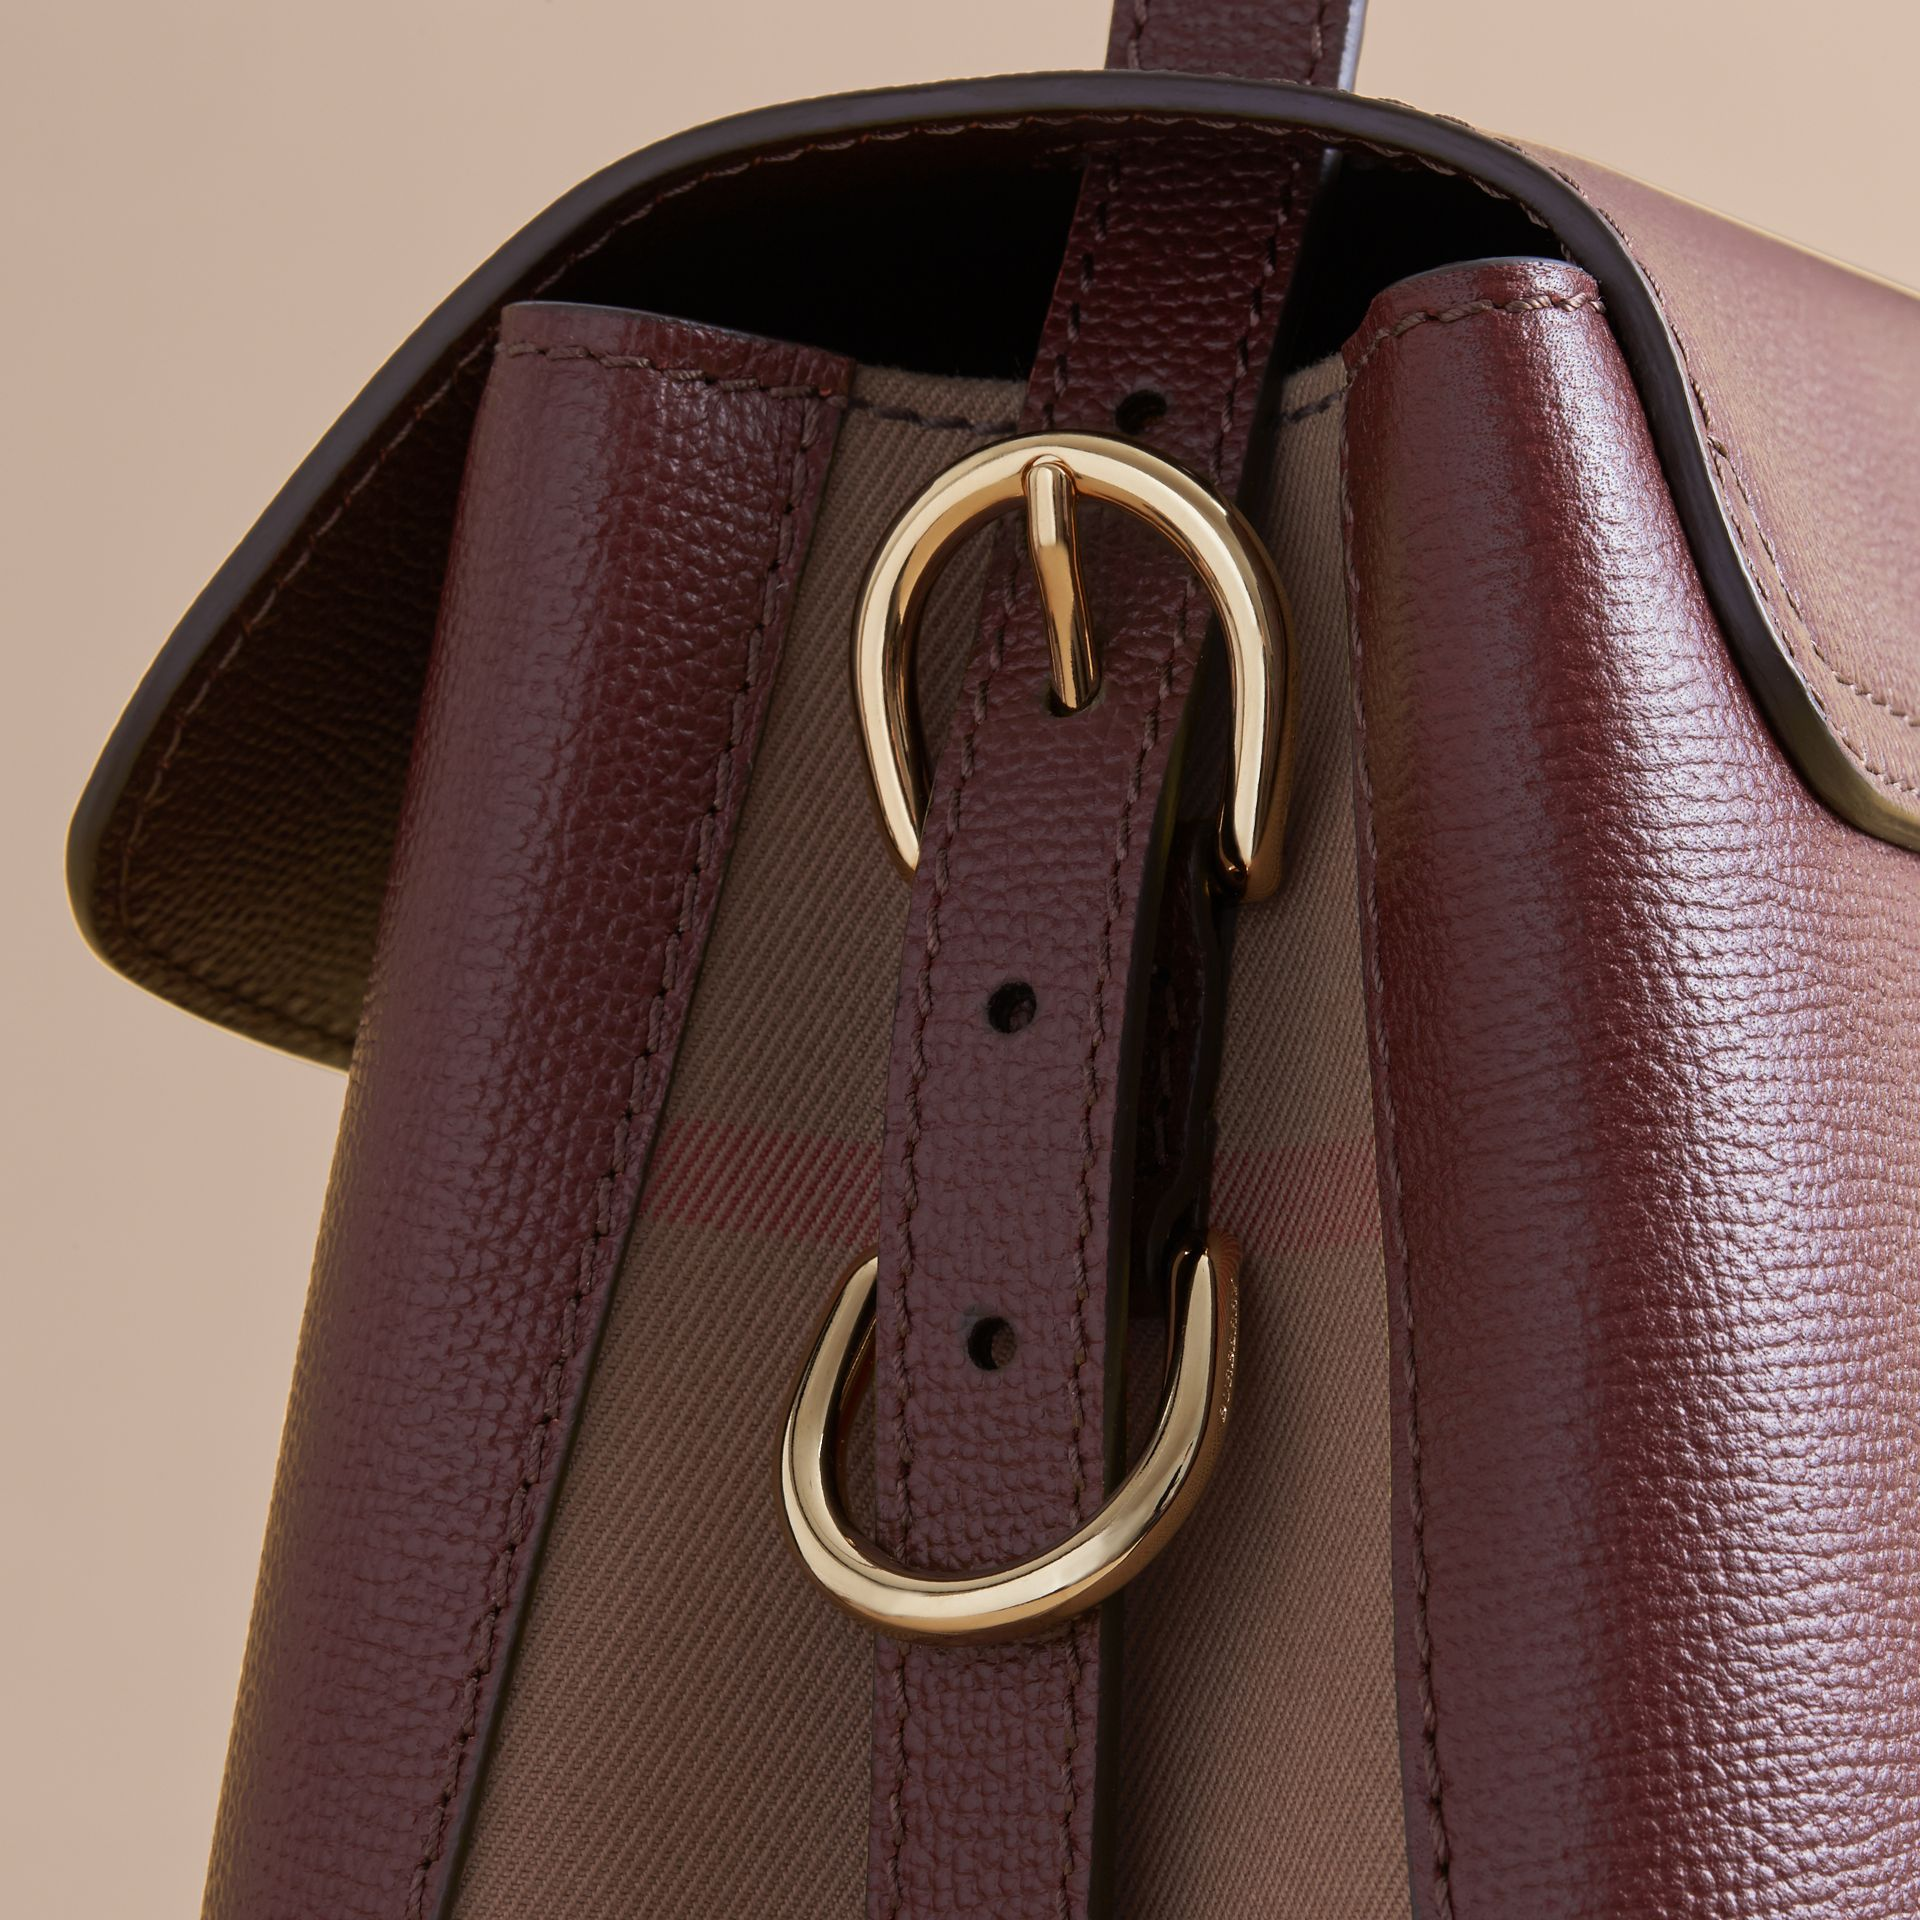 Medium Grainy Leather and House Check Tote Bag in Mahogany Red - Women | Burberry - gallery image 6